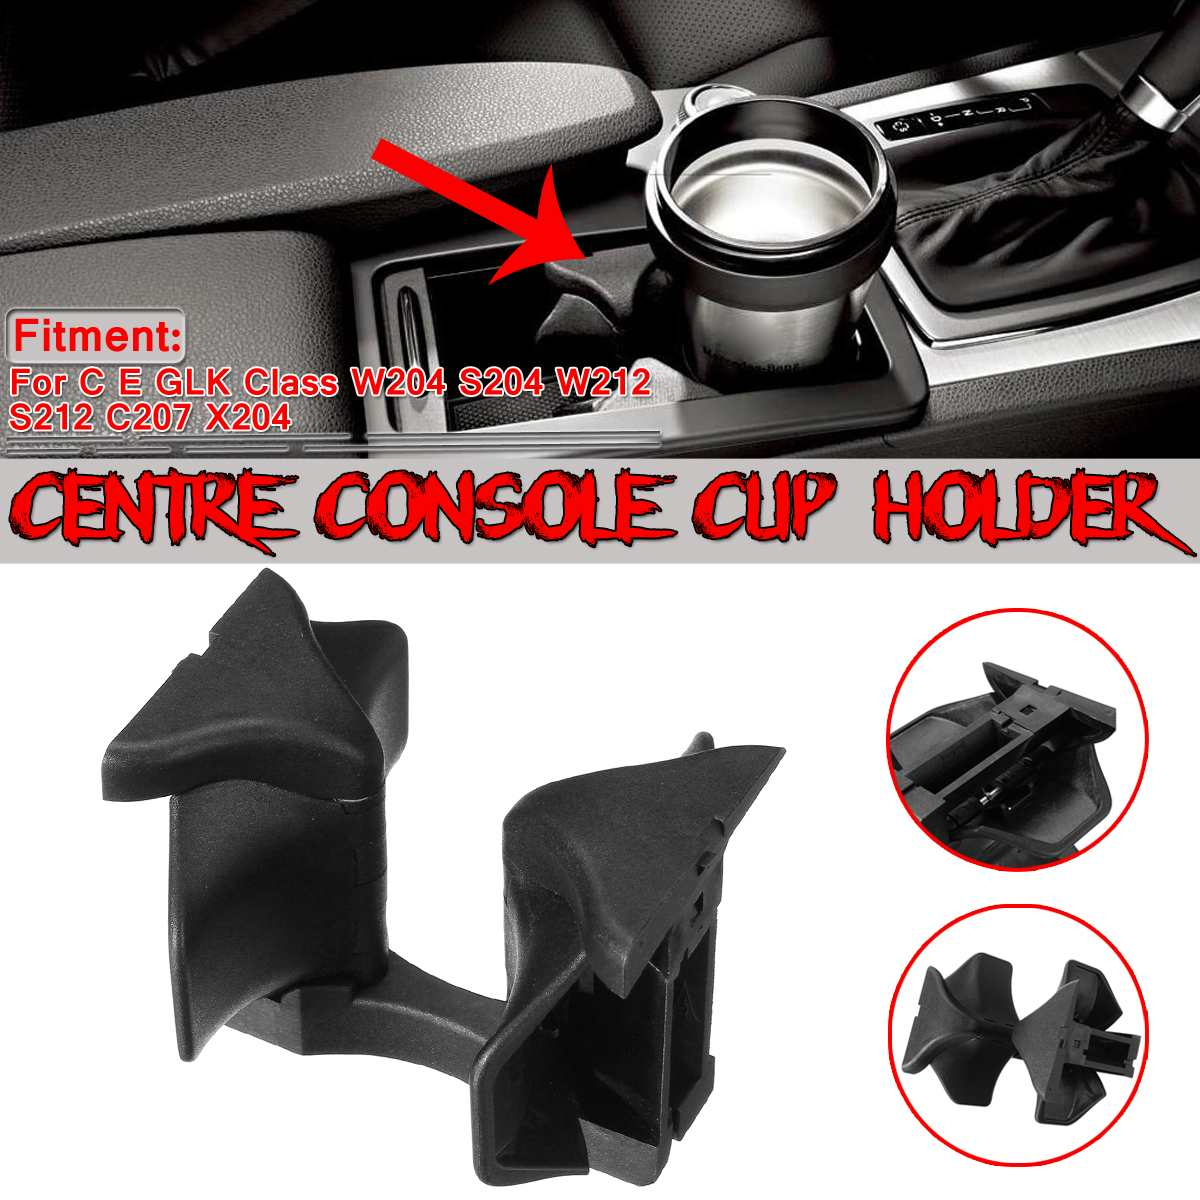 W204 W212 Centre Console Car Cup Holder For Mercedes For Benz C E Class W204 S204 W212 S212 C207 Water Cup Drink Holder Insert